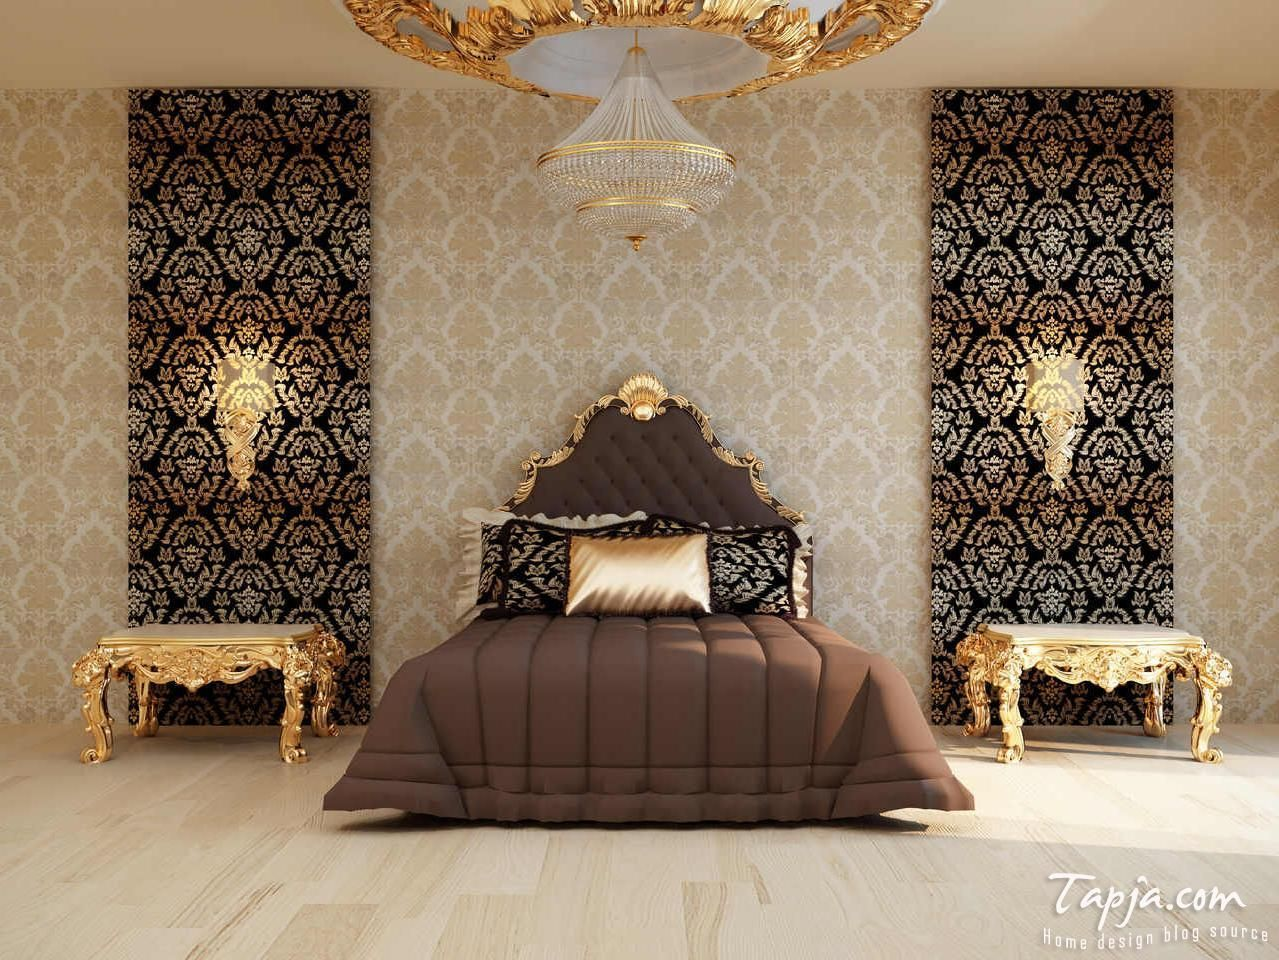 Bedroom paint ideas accent wall paper - Modern Bedroom Decoration With Gold Color Accent And Brown Color Combination Bedding Plus Decorative Gold Wallpaper